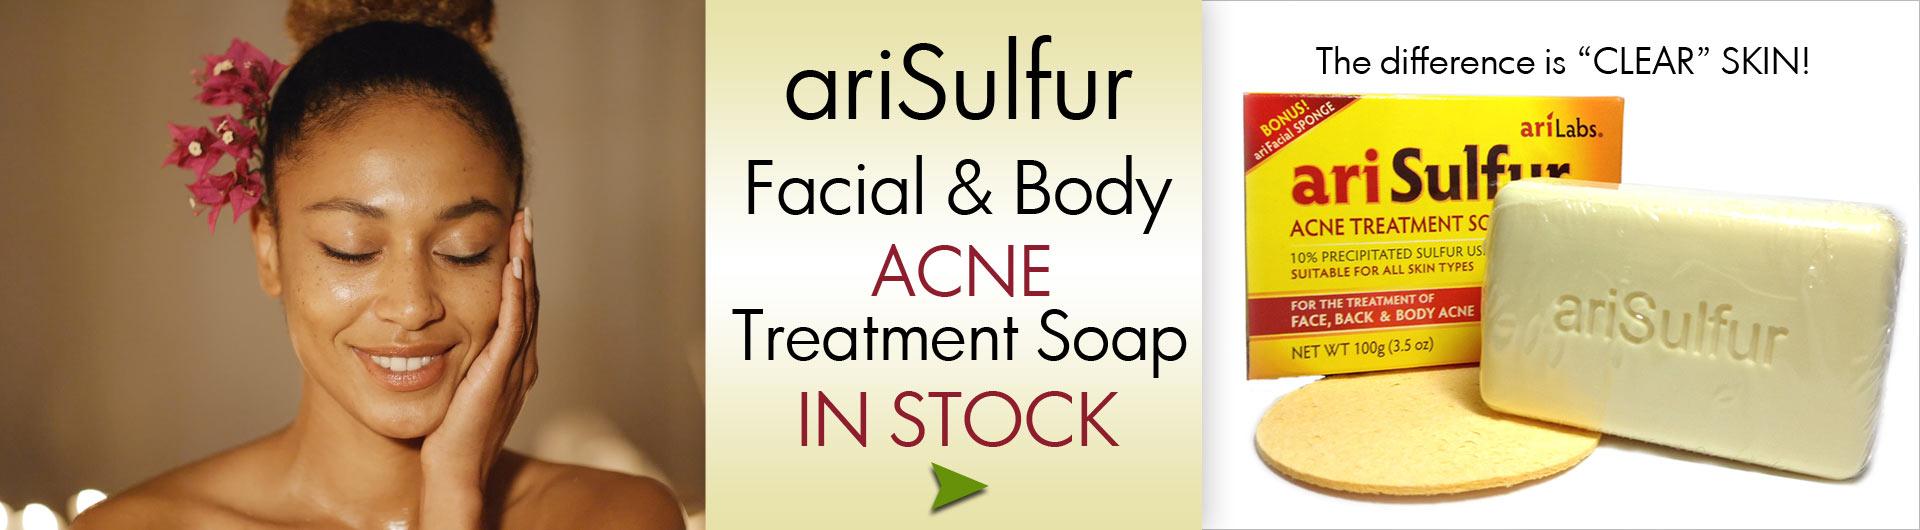 arisulfur facial and body acne treatment soap in stock